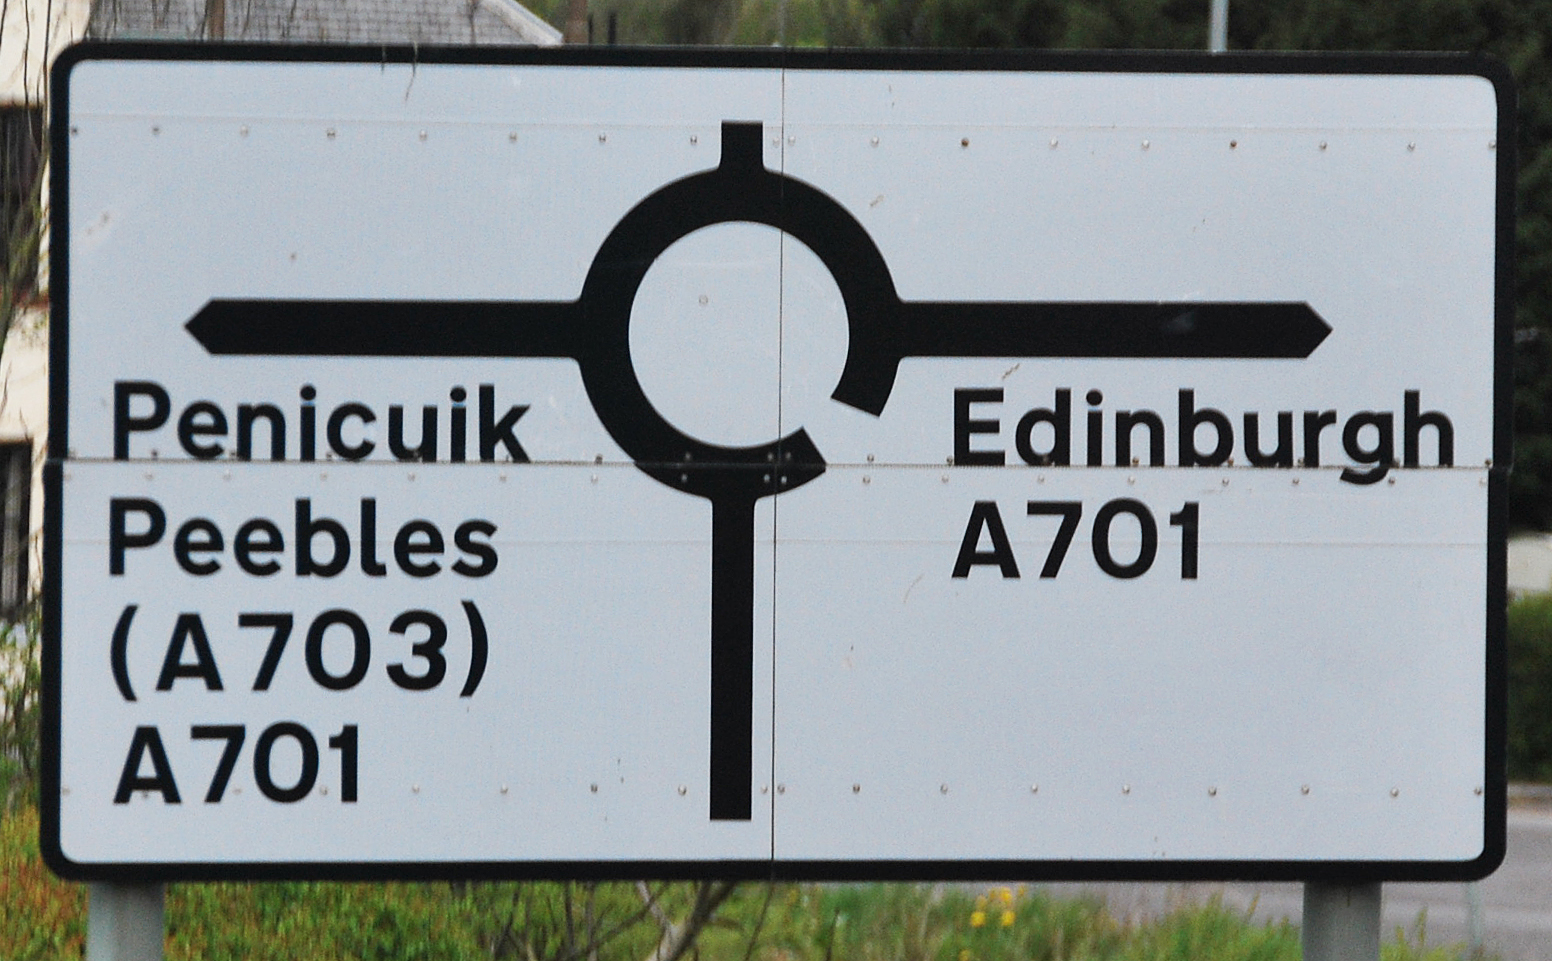 A sign in Scotland indicating that you are about to enter a round about. http://www.enjoy-europe.com/hte/chap18/Chap18images/0220ScotlandTrafficCircle.jpg